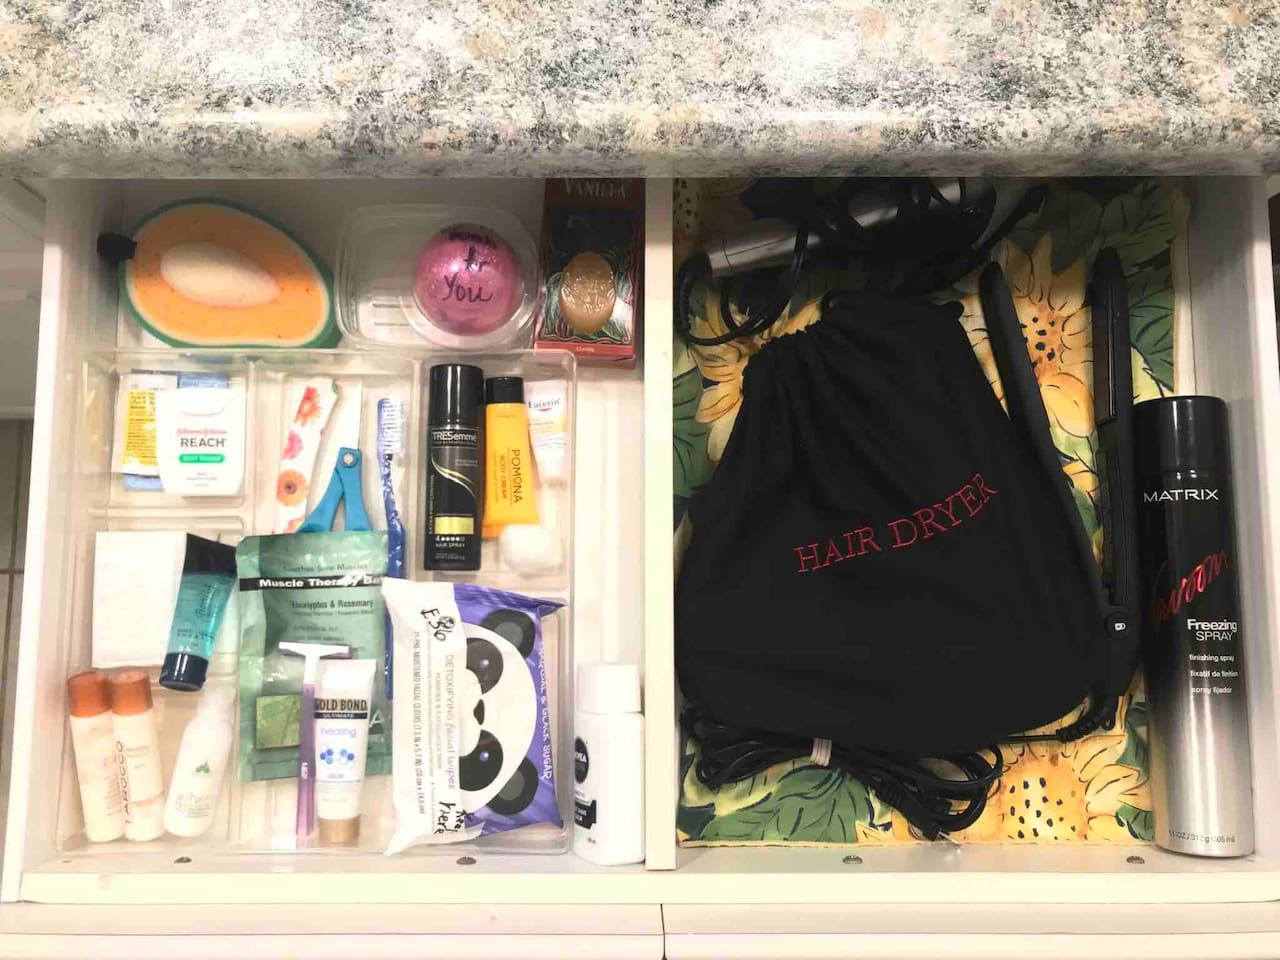 Plenty of miscellaneous supplies you might need in each bathroom. Help yourself!  Plus each bathroom has a nice hairdryer and various styling tools + hairspray.